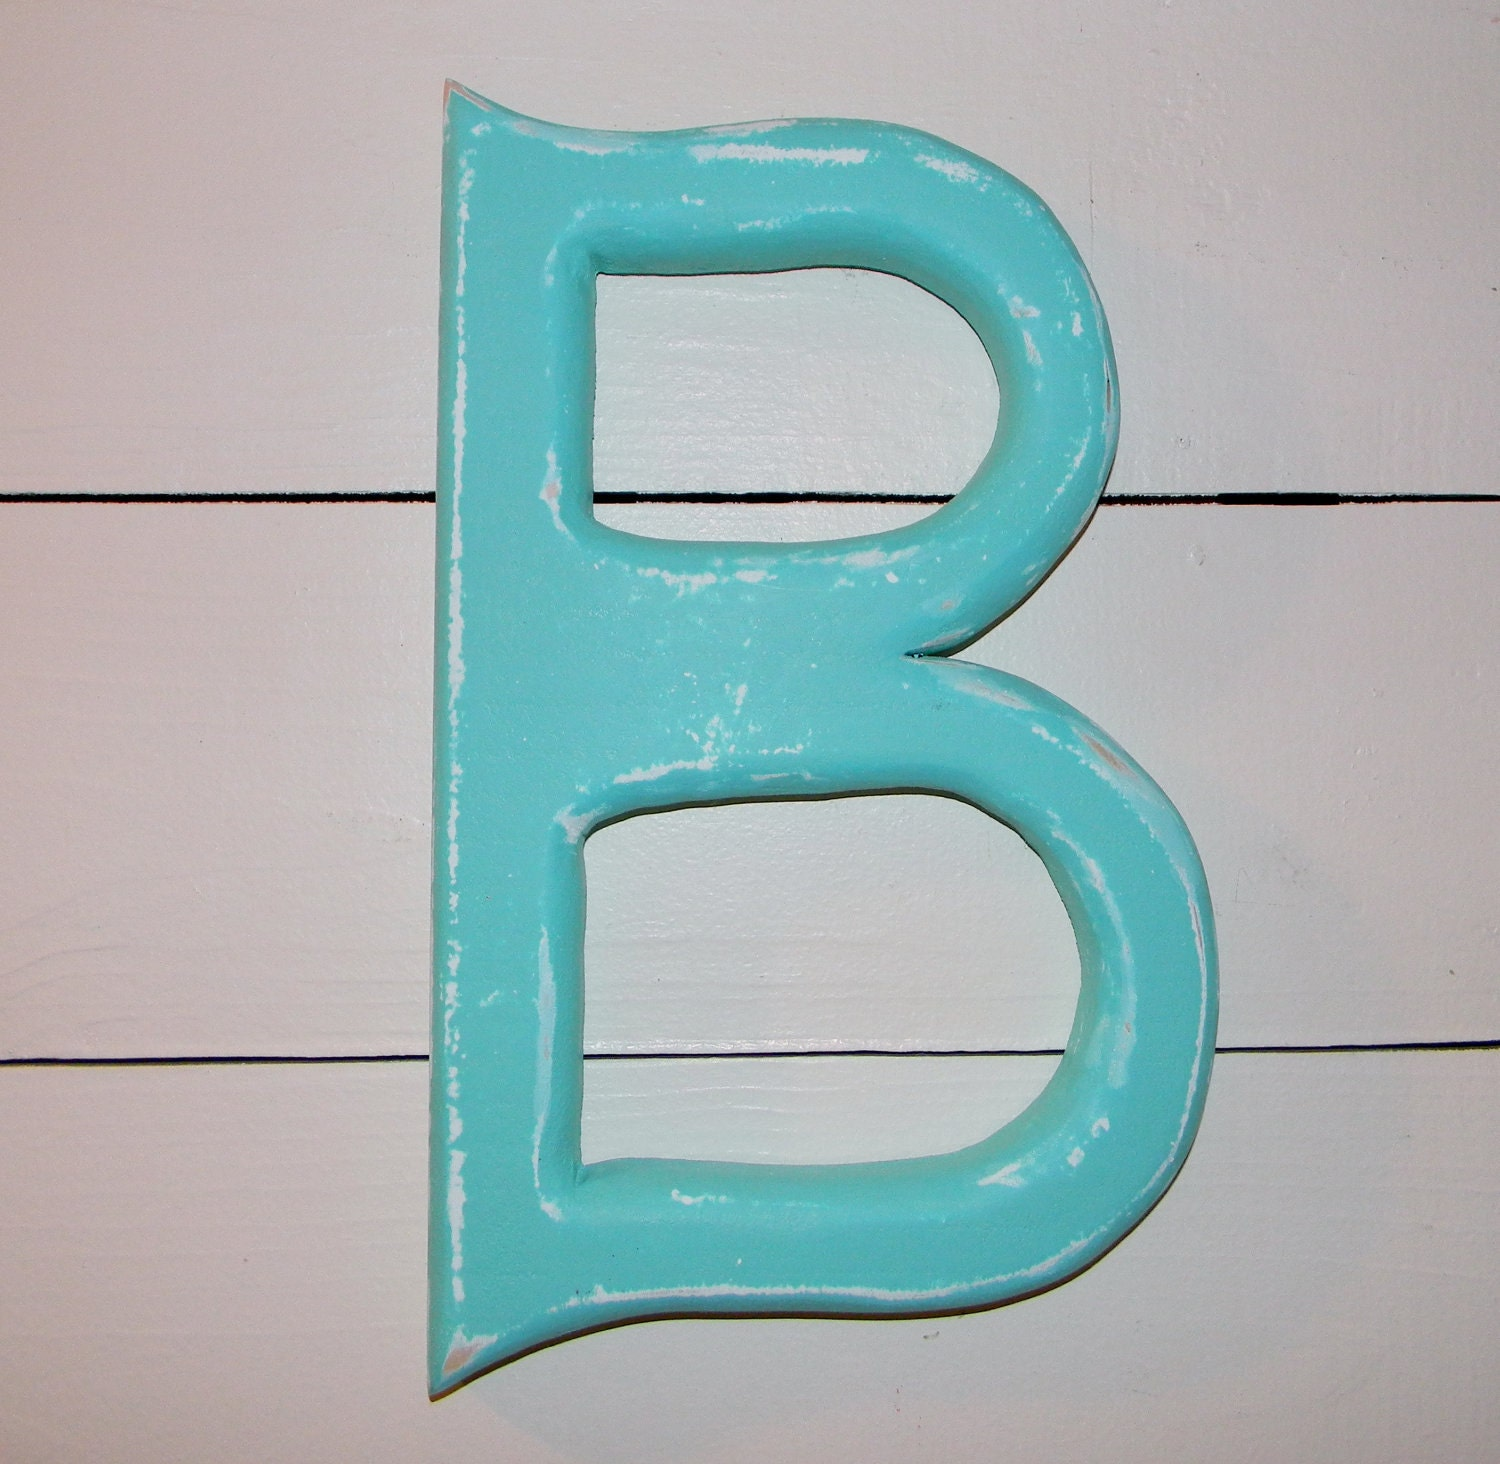 Wall Decor Letter B : Wooden letter b wall decor patina aqua by hensnesttreasures